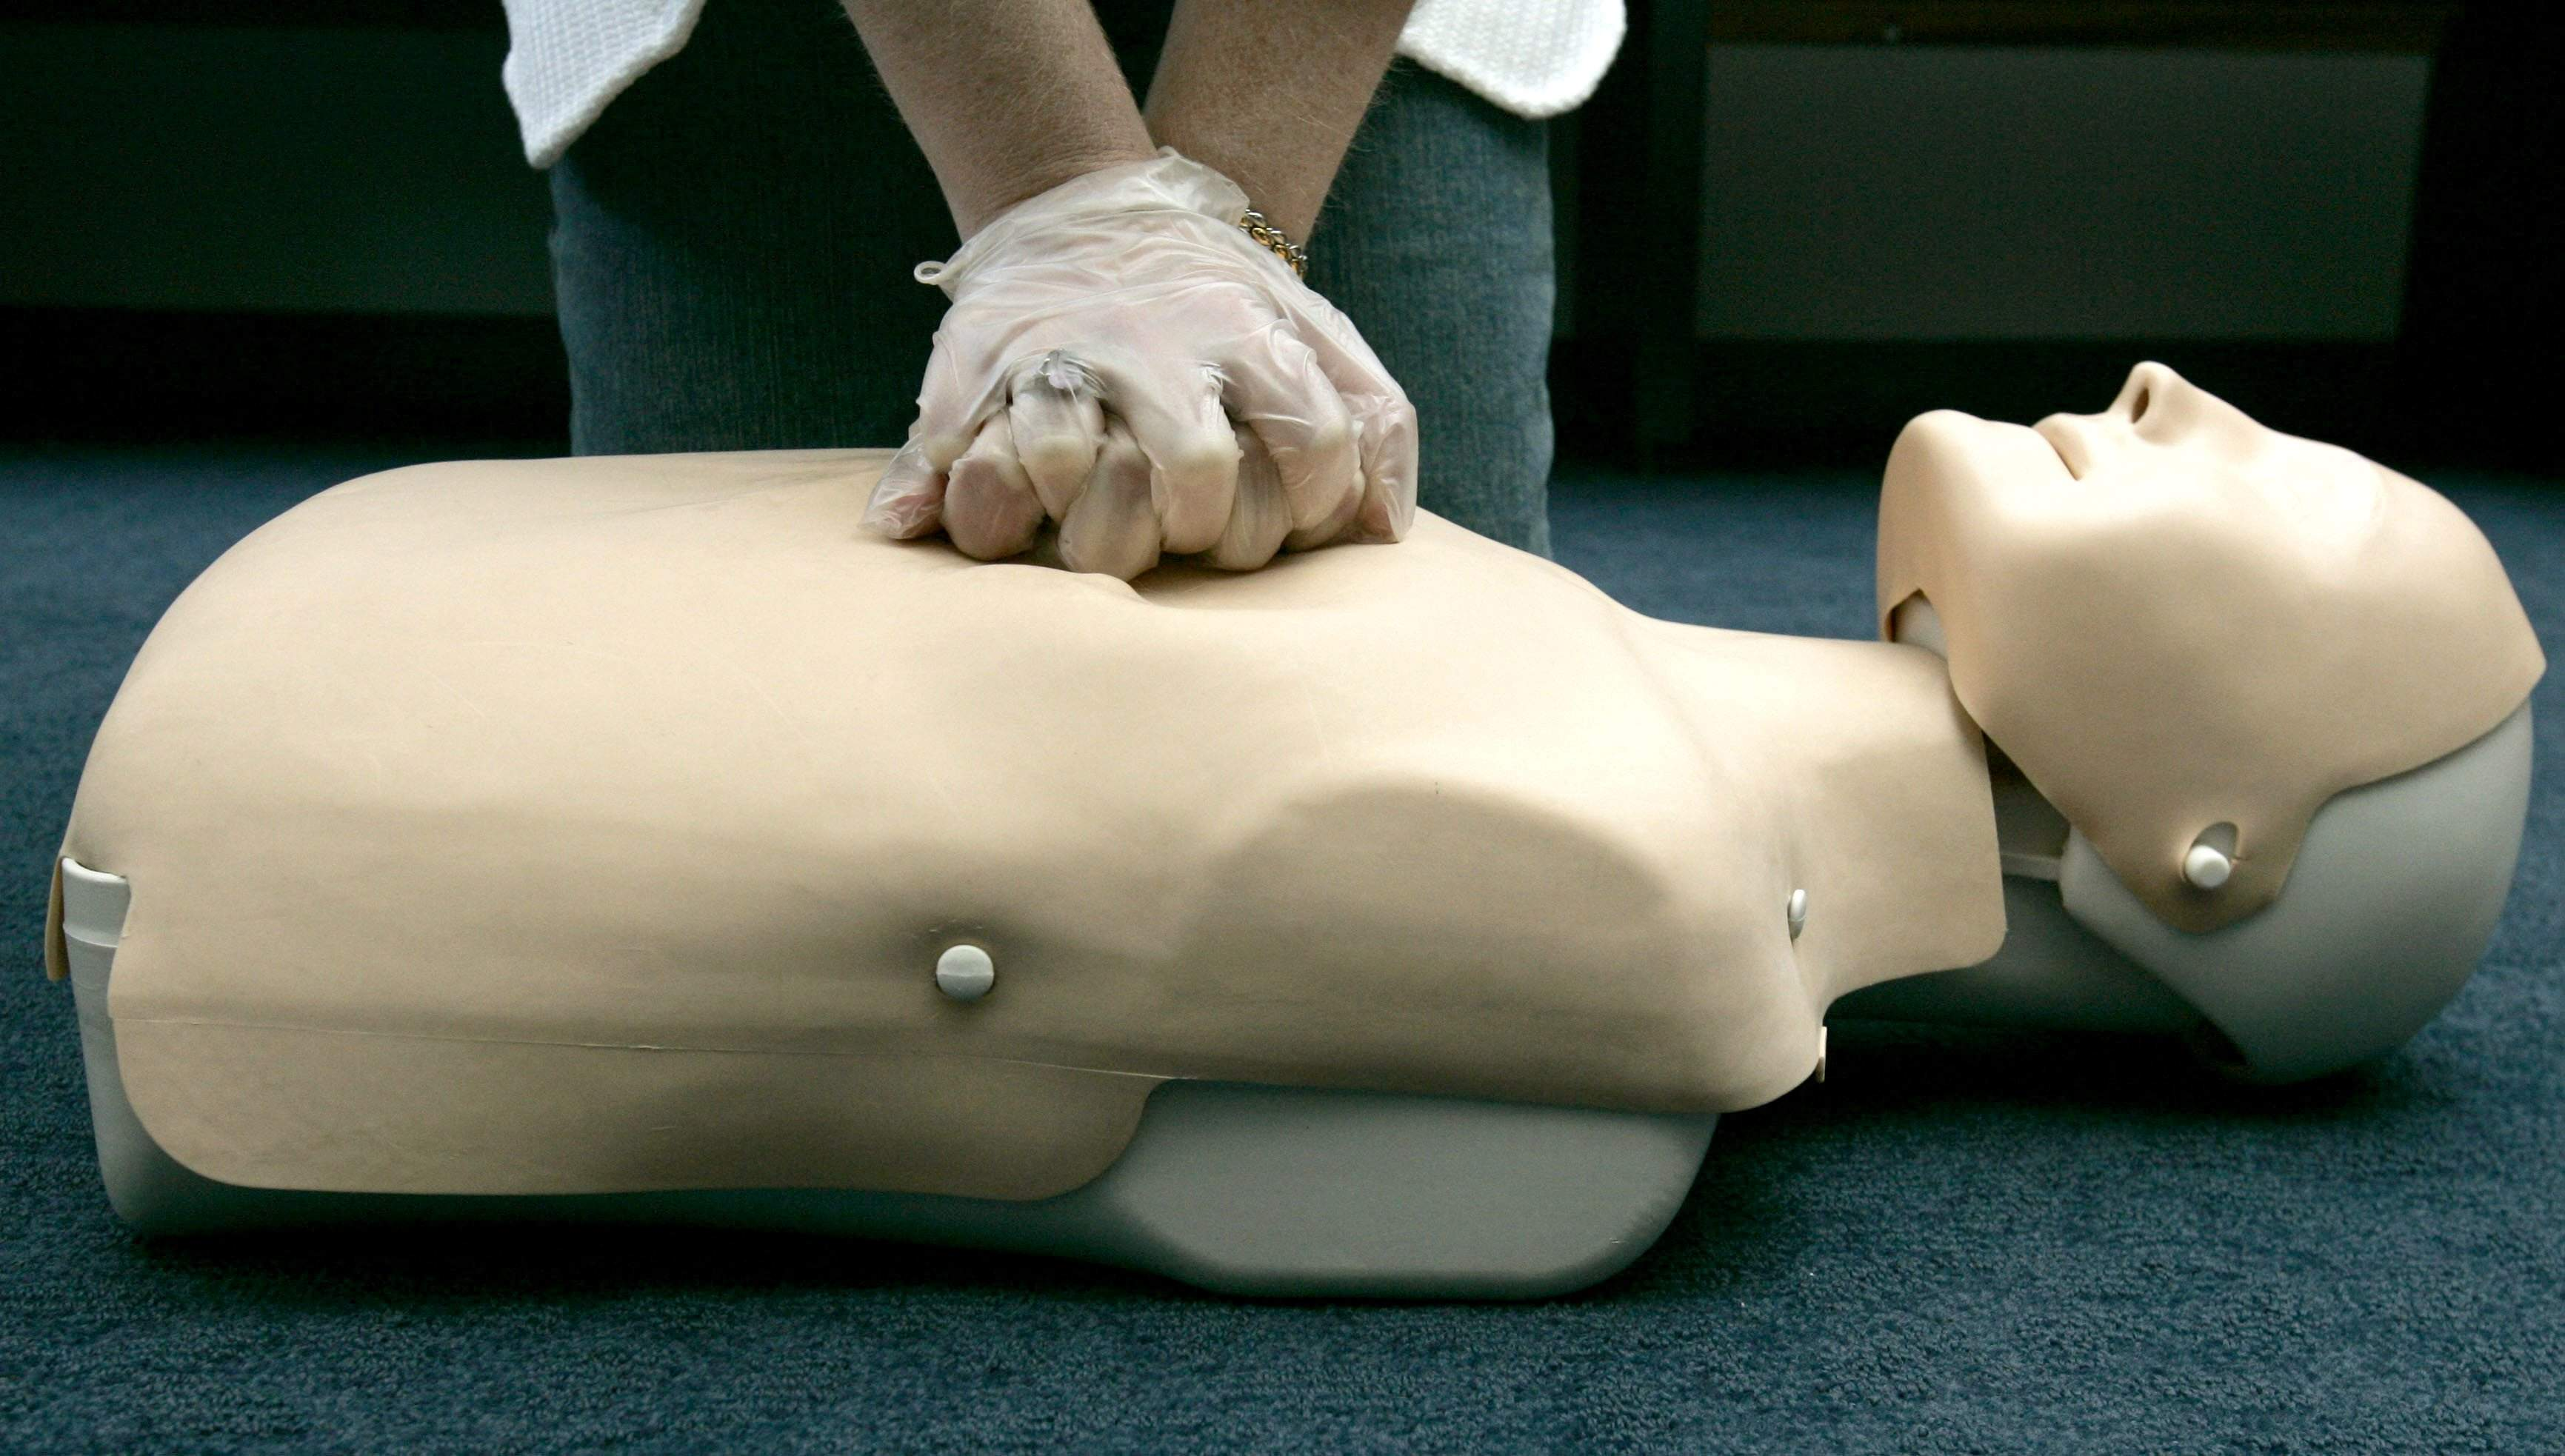 Heart safe la plata to hold first aid cpr classes 1betcityfo Gallery